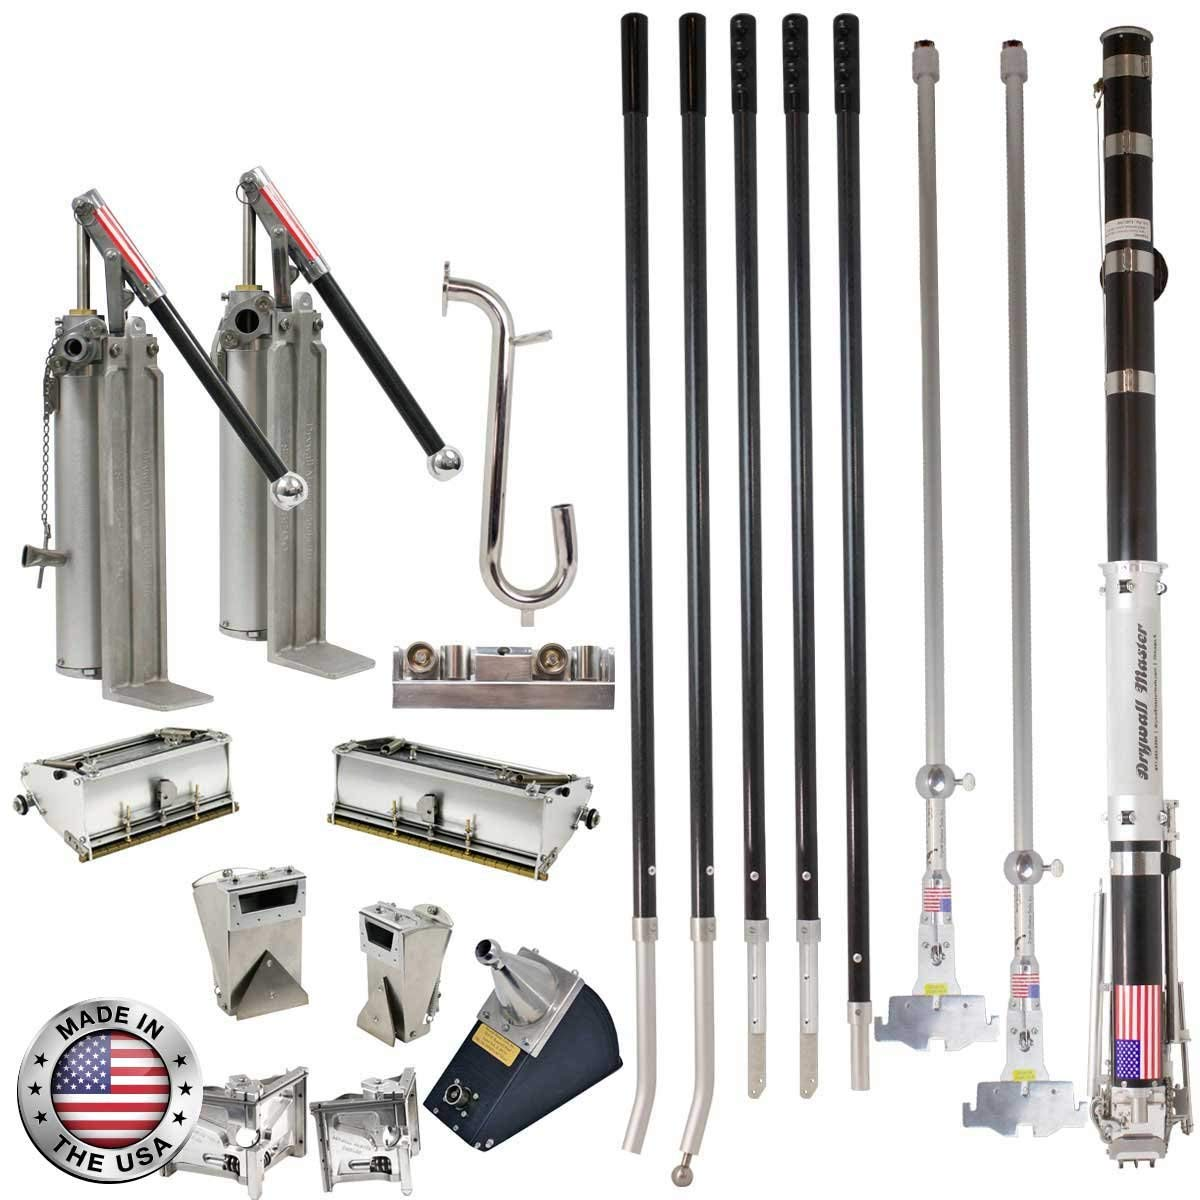 Cheap Drywall Tools, find Drywall Tools deals on line at Alibaba com